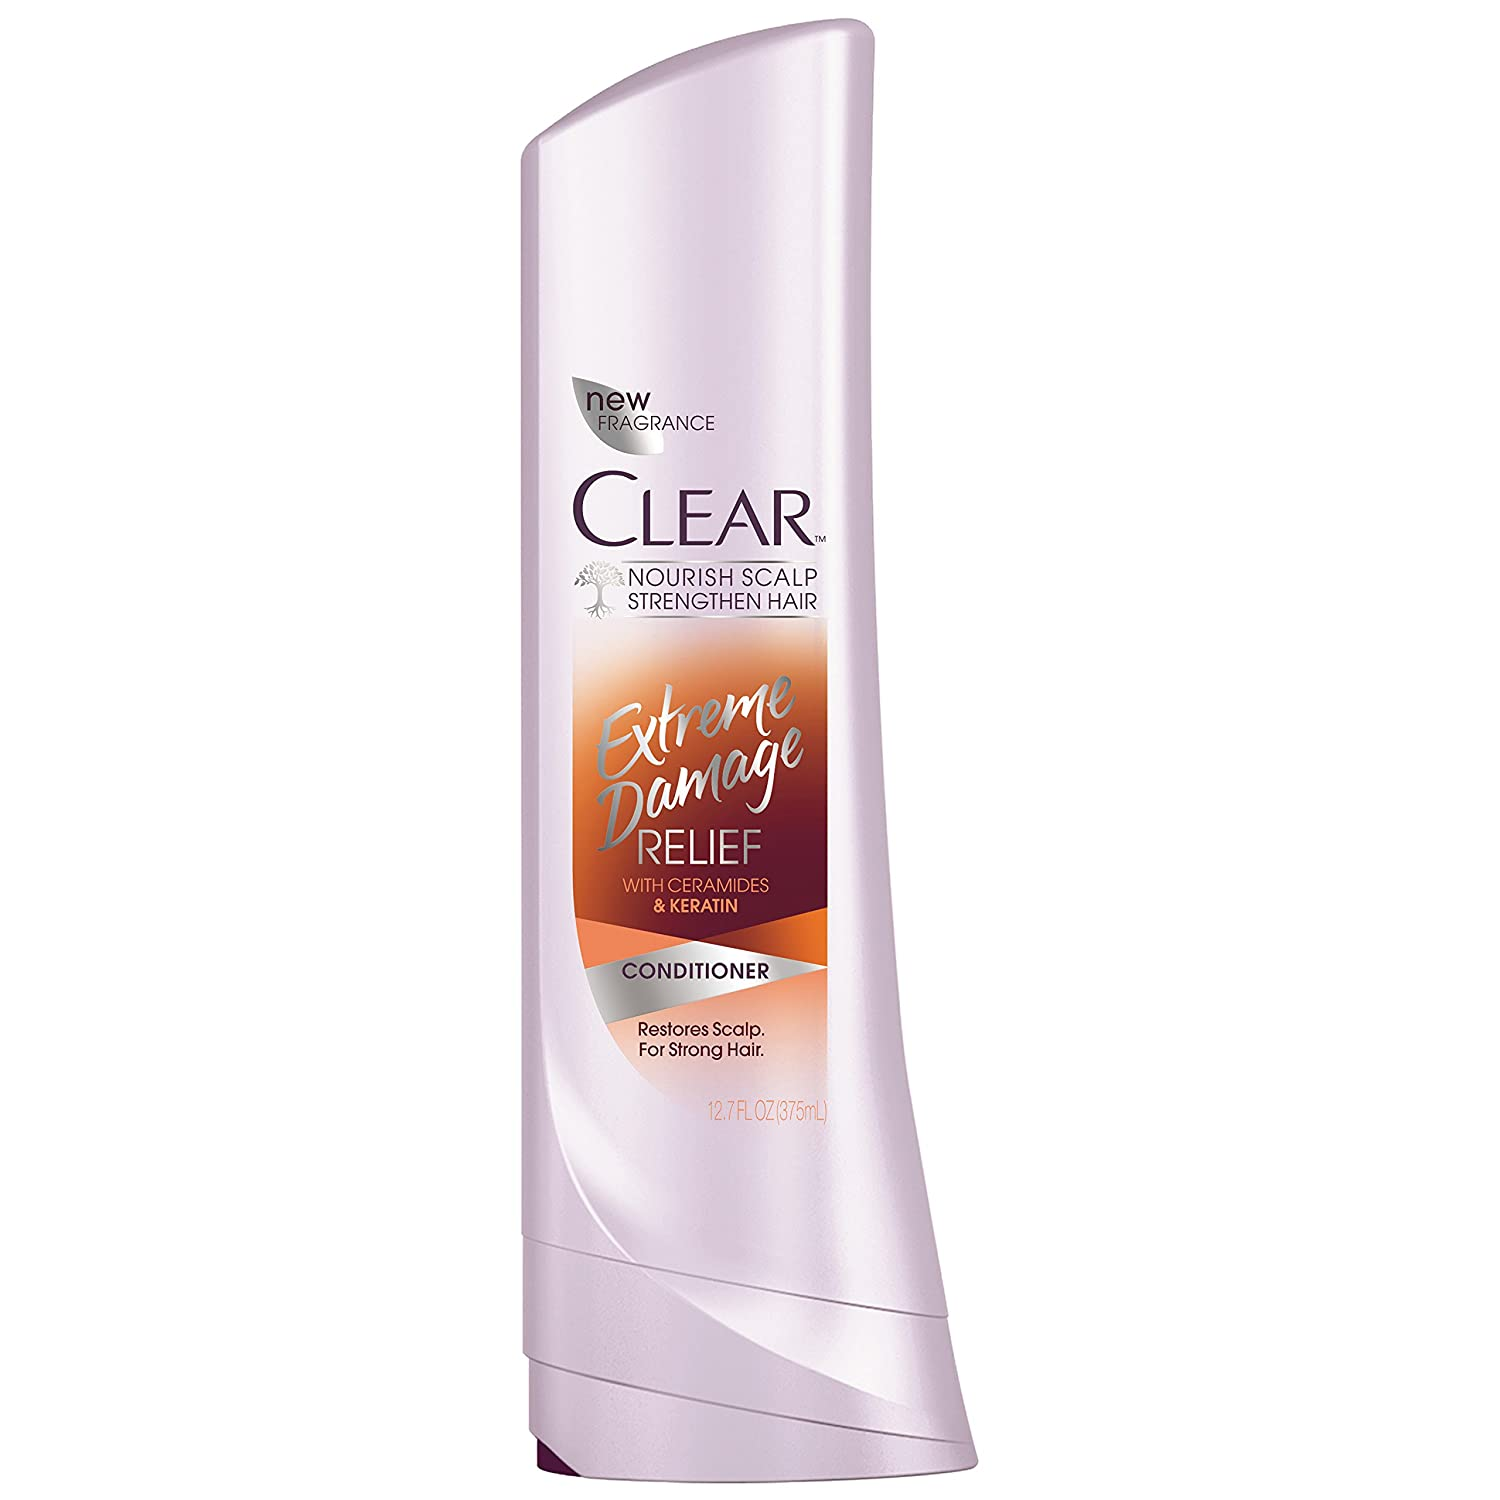 Clear Conditioner, Extreme Damage Relief 12.7 Oz by Clear